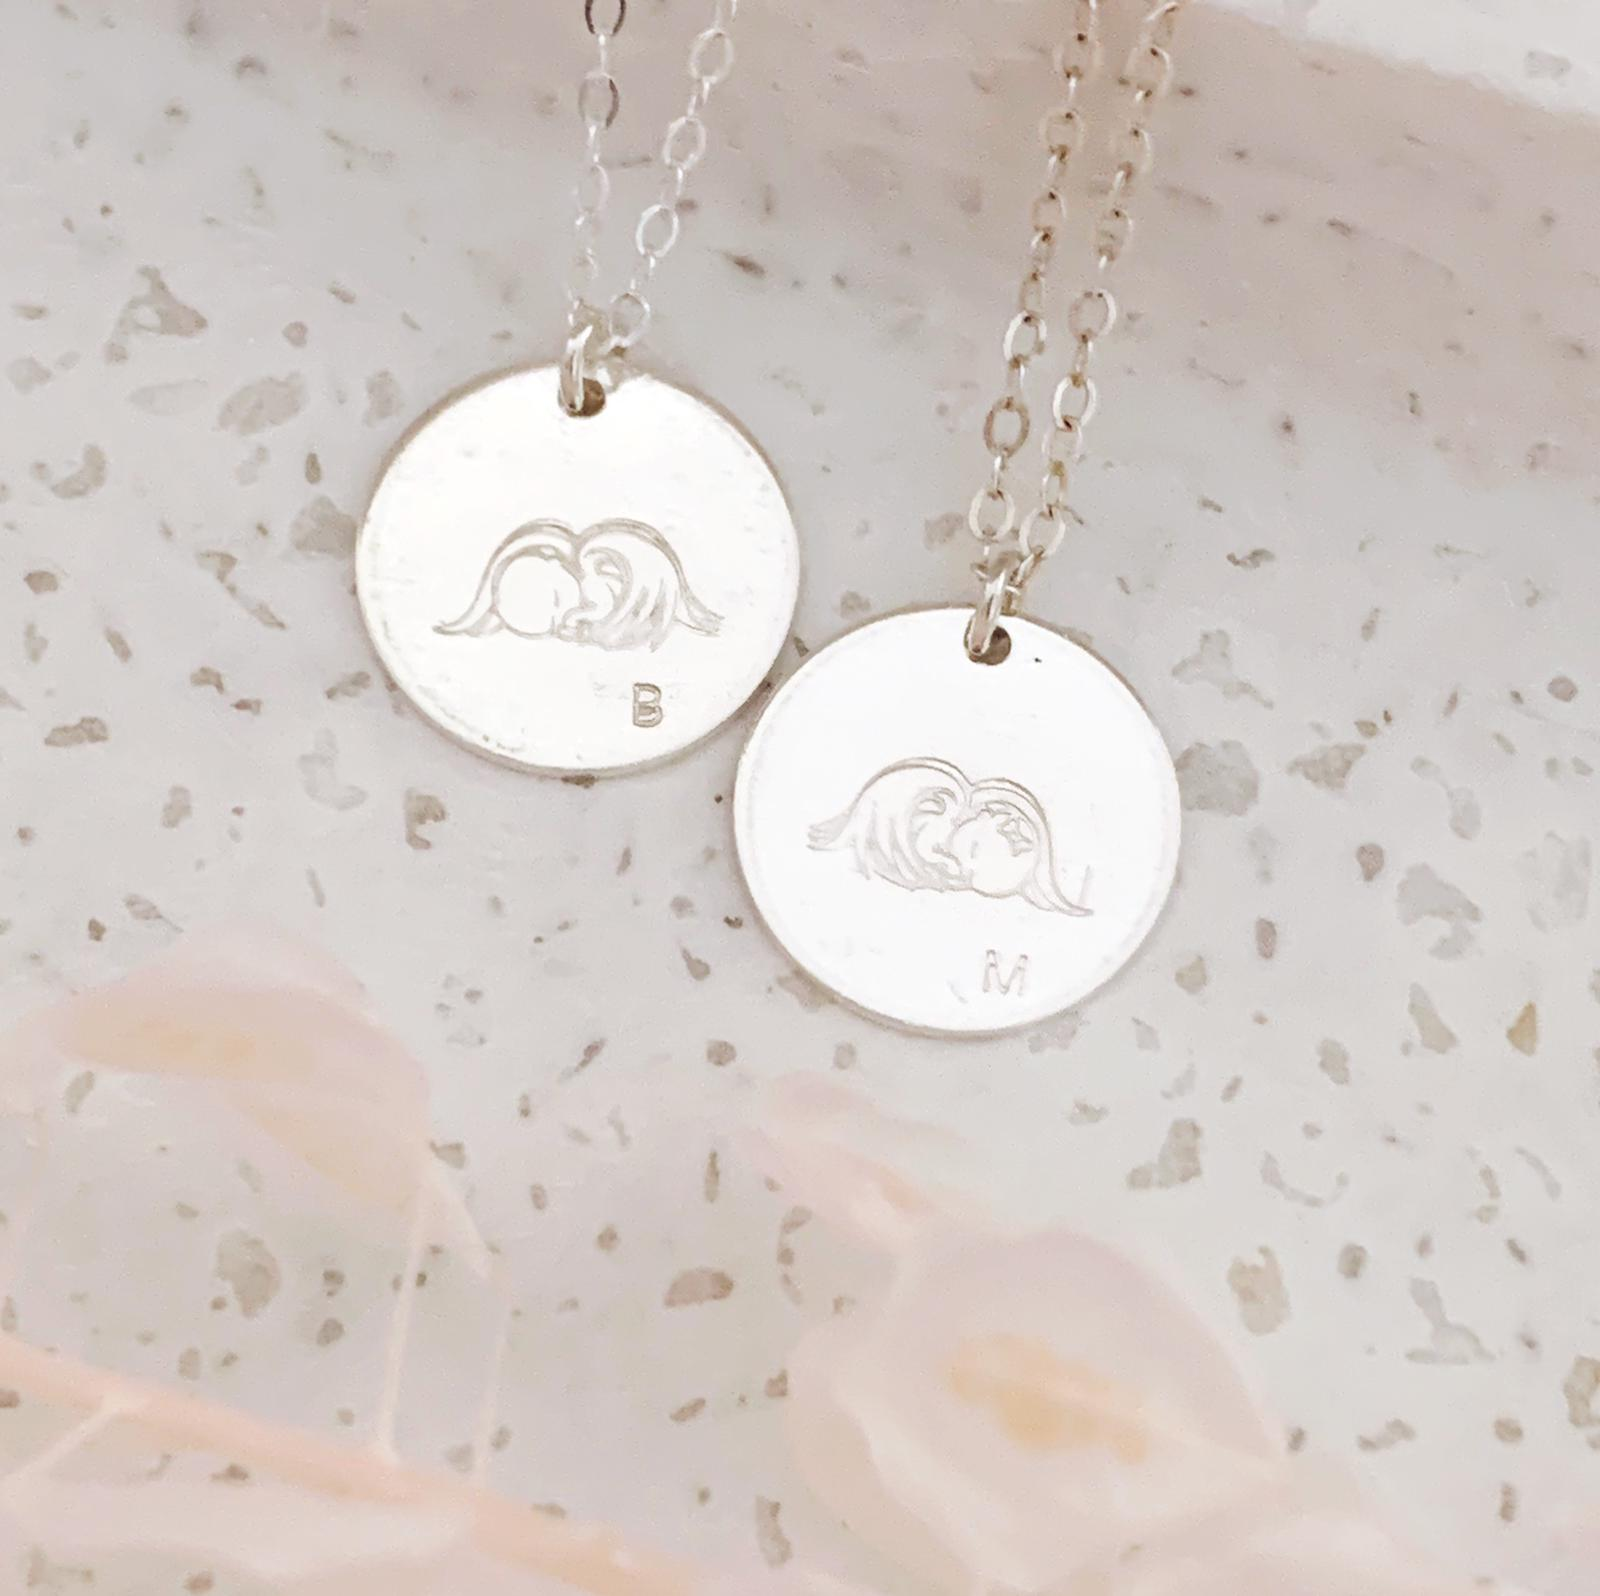 Sleeping Angel Disc Necklace - Large Disc